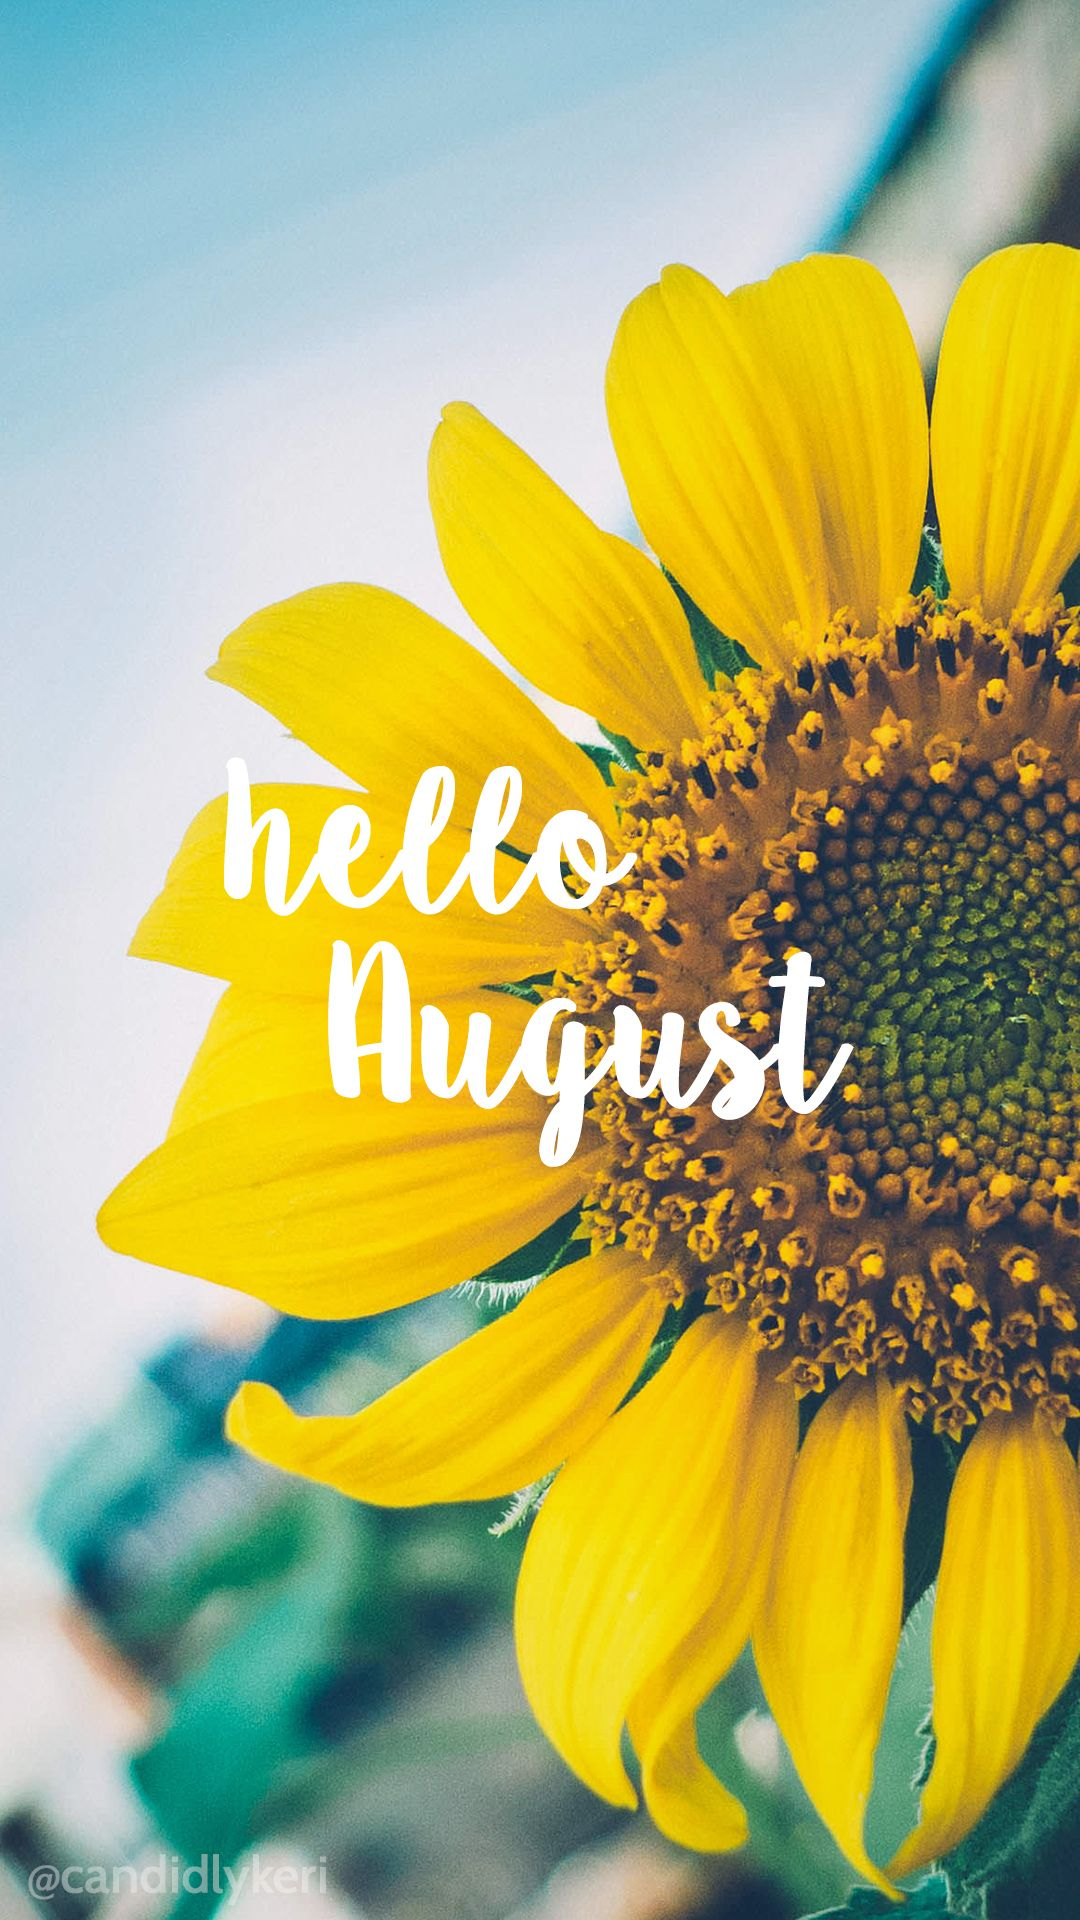 Nice Hello August Sunflower Bright Happy Background August 2016 Wallpaper You  Can Download For Free On The Blog! For Any Device; Mobile, Desktop, Iphone,  ...